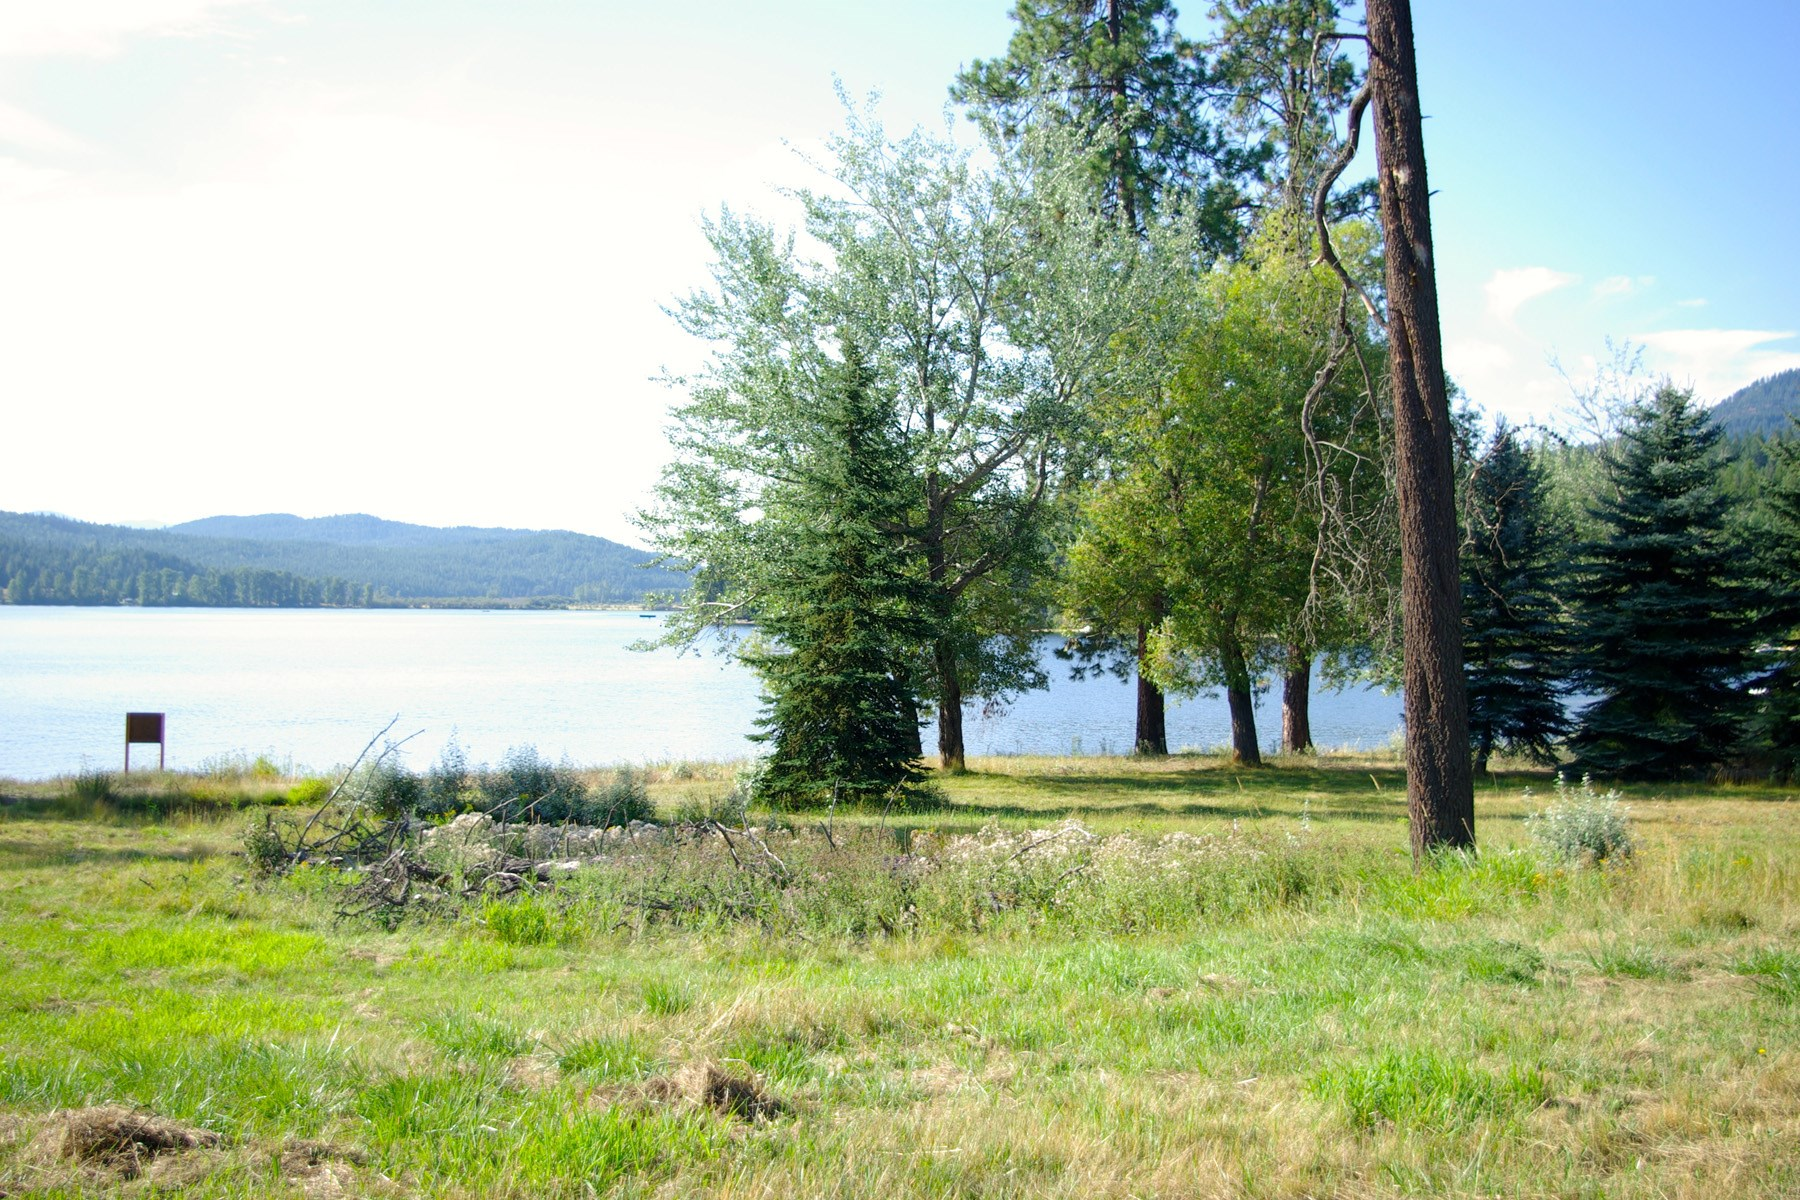 Land for Sale at Your own private sandy beach on Lake Cocolalla, Lot 4 Lot 4 Sandy Beach Ln Cocolalla, Idaho 83813 United States